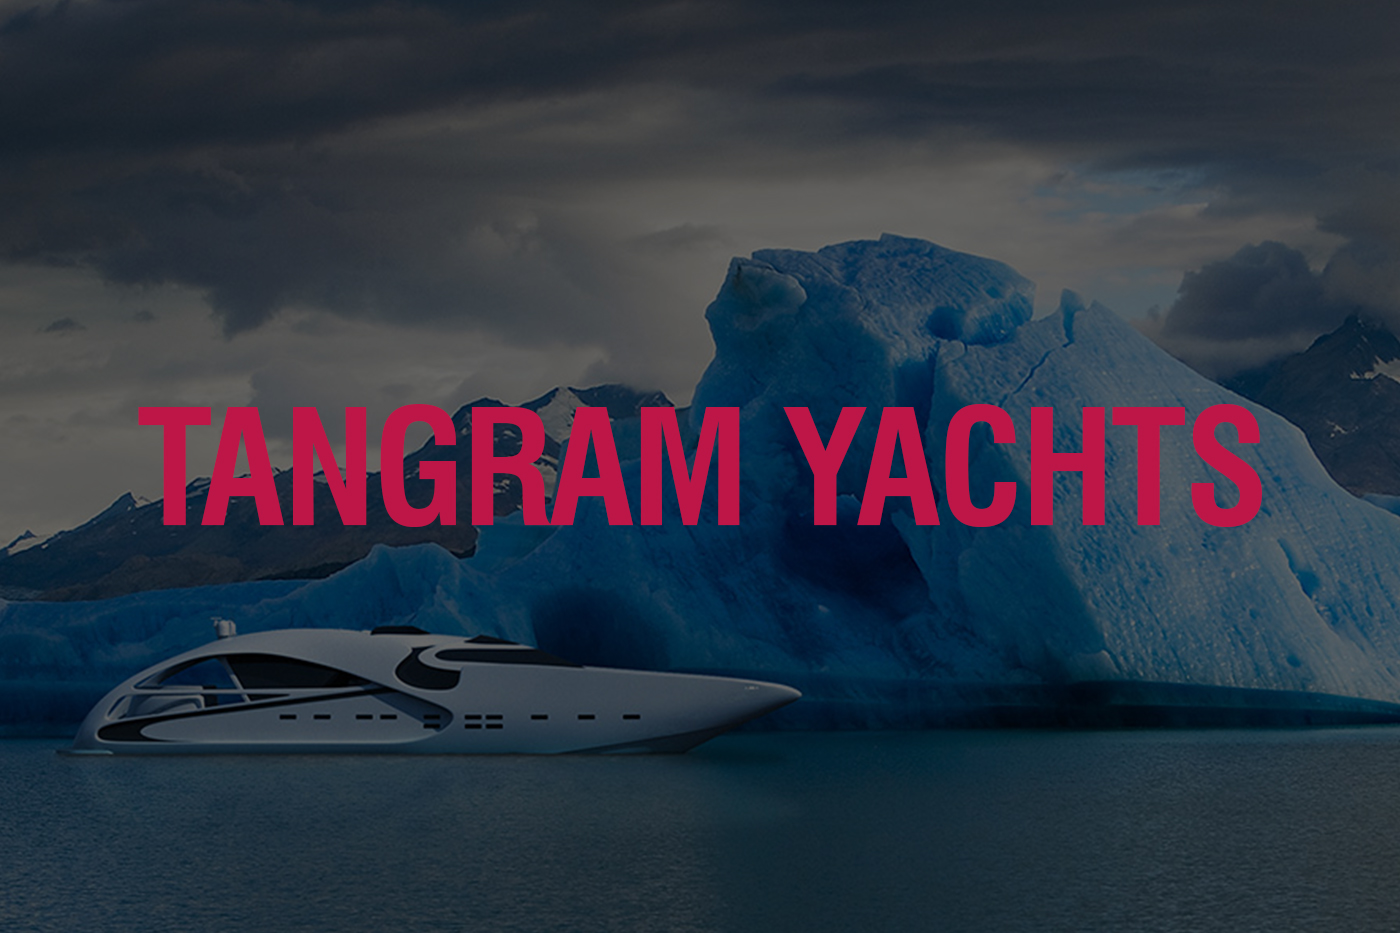 Tangram Yachts Web Design Services